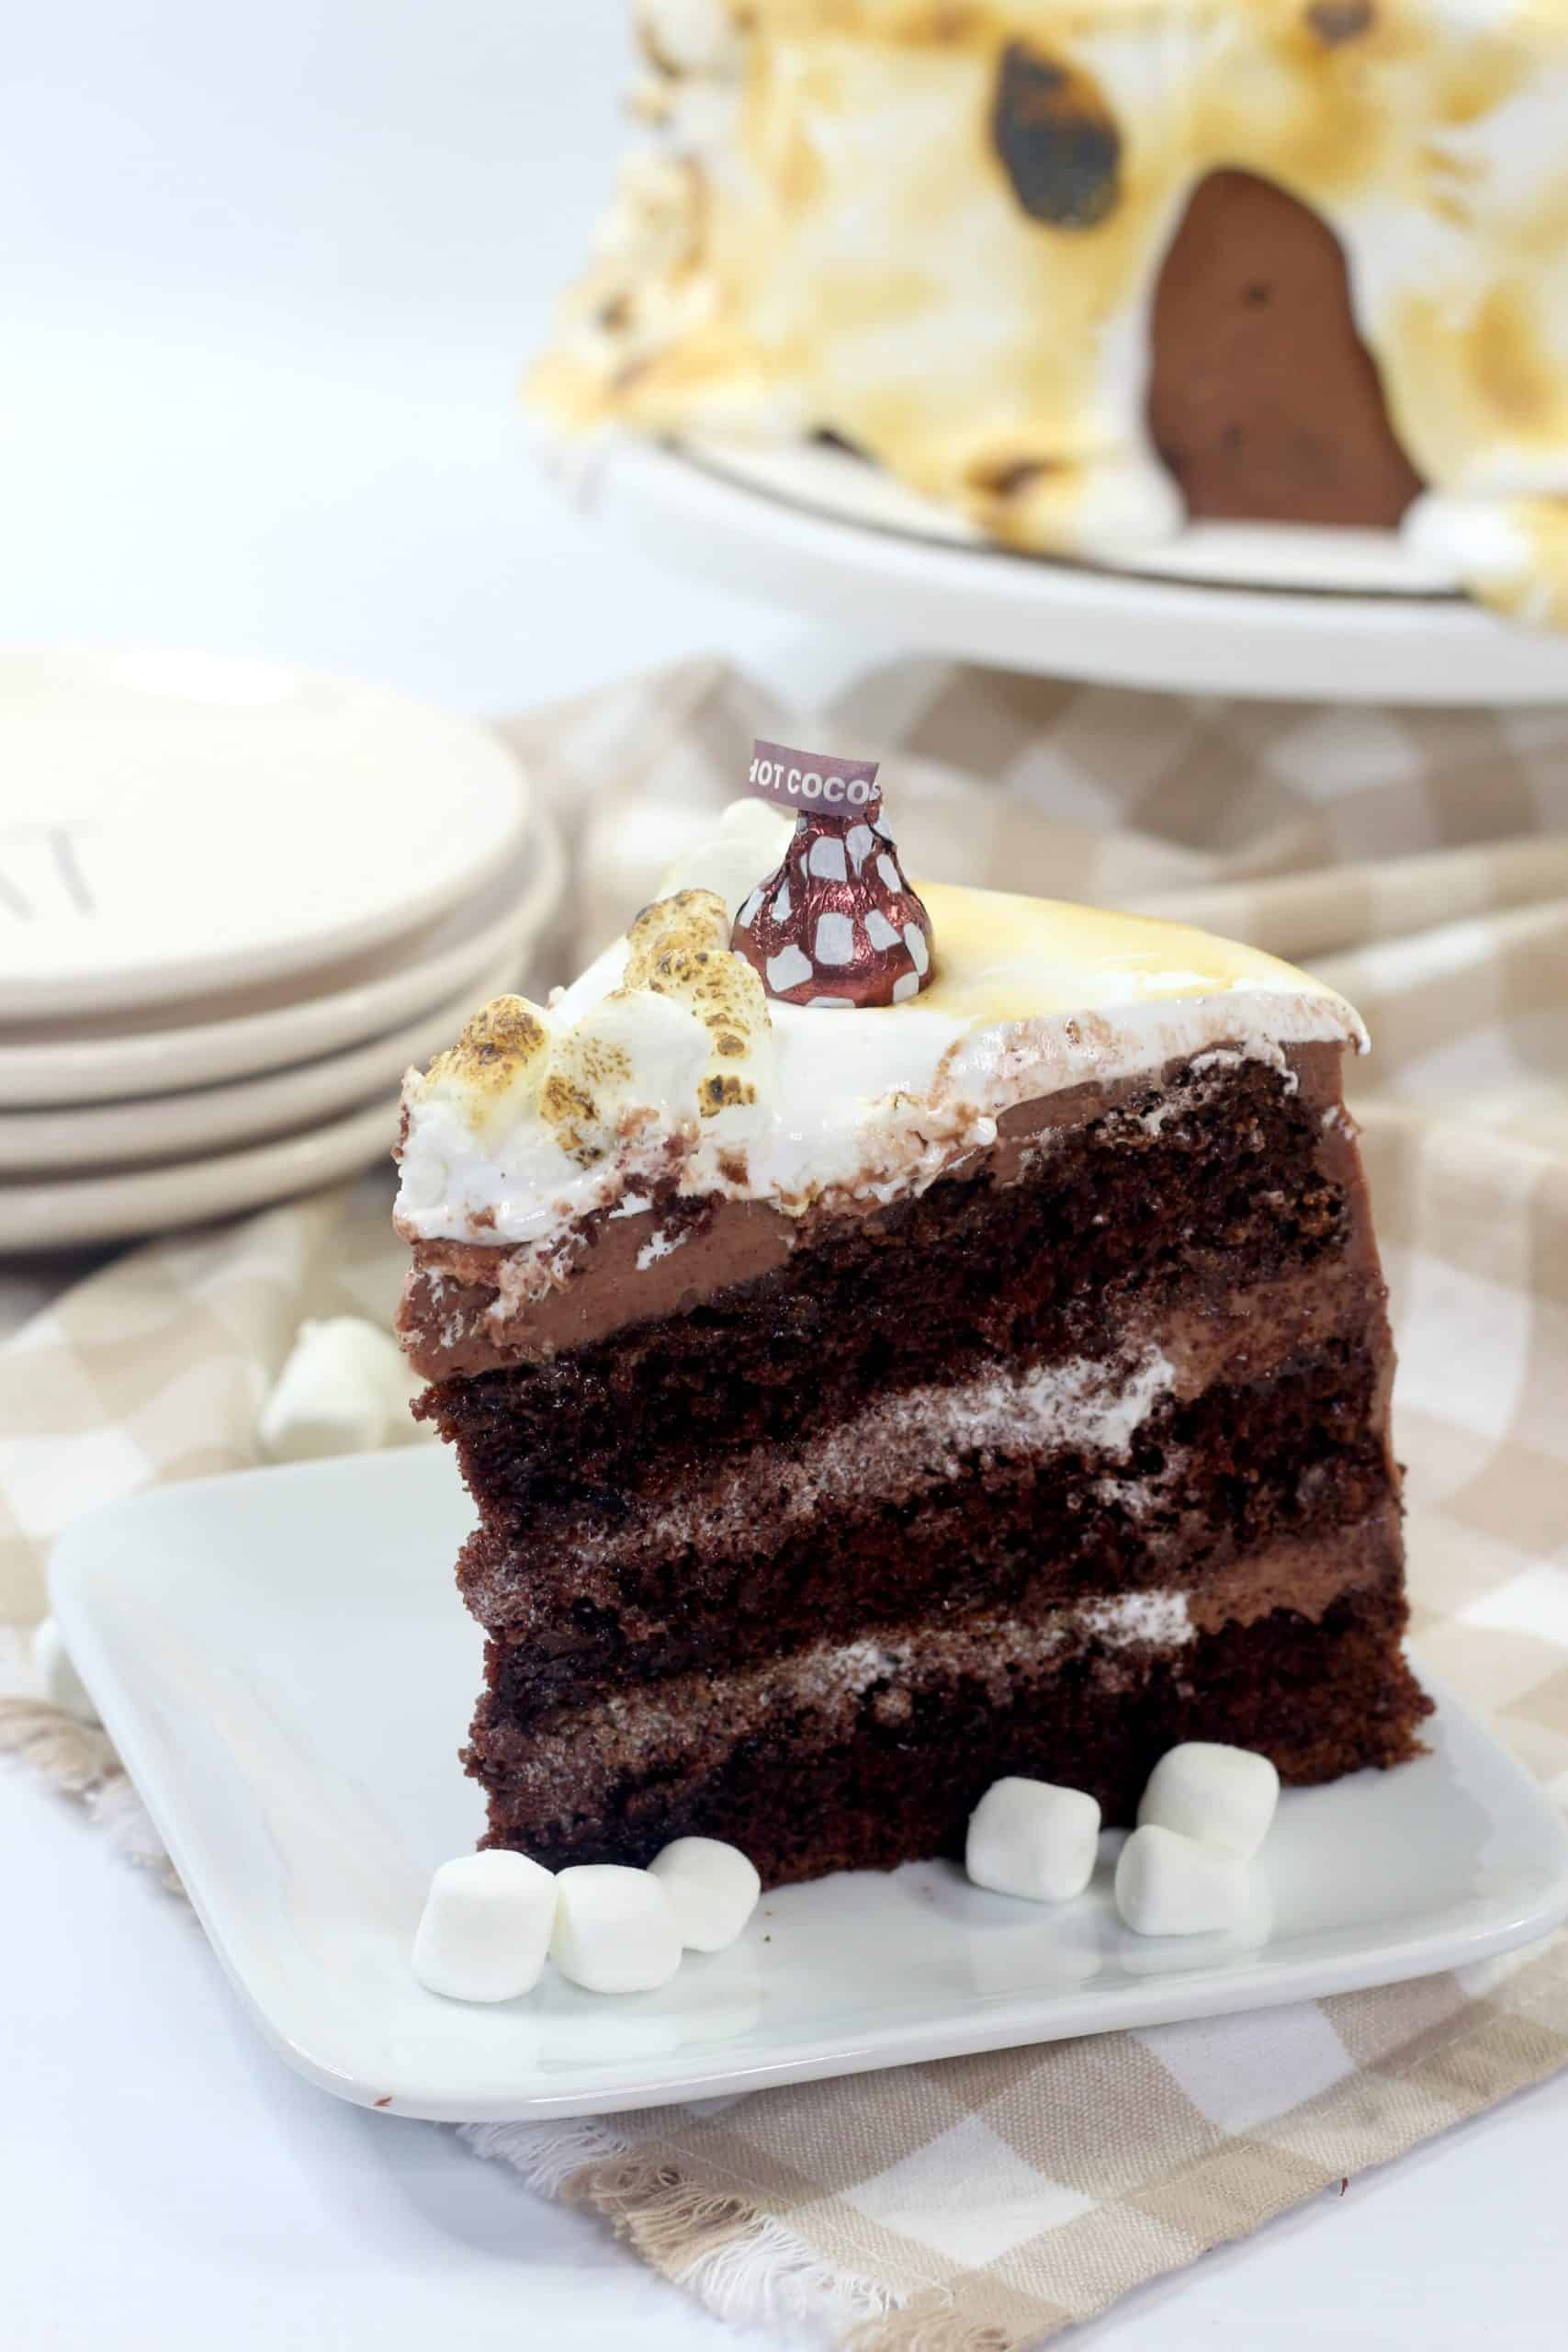 slice of hot chocolate cake